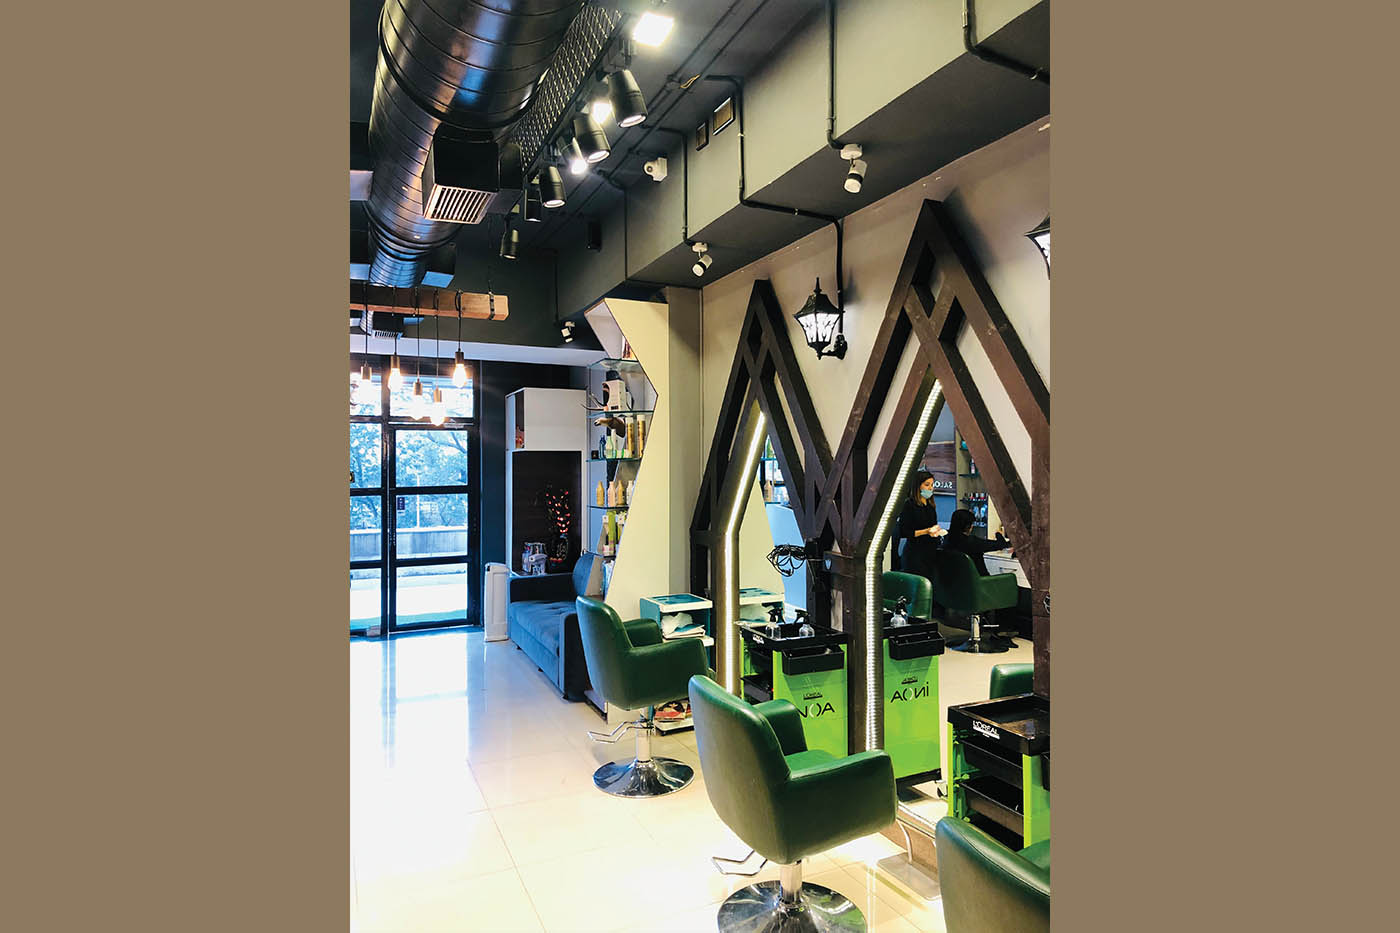 S&S Salon — Bringing Smiles with